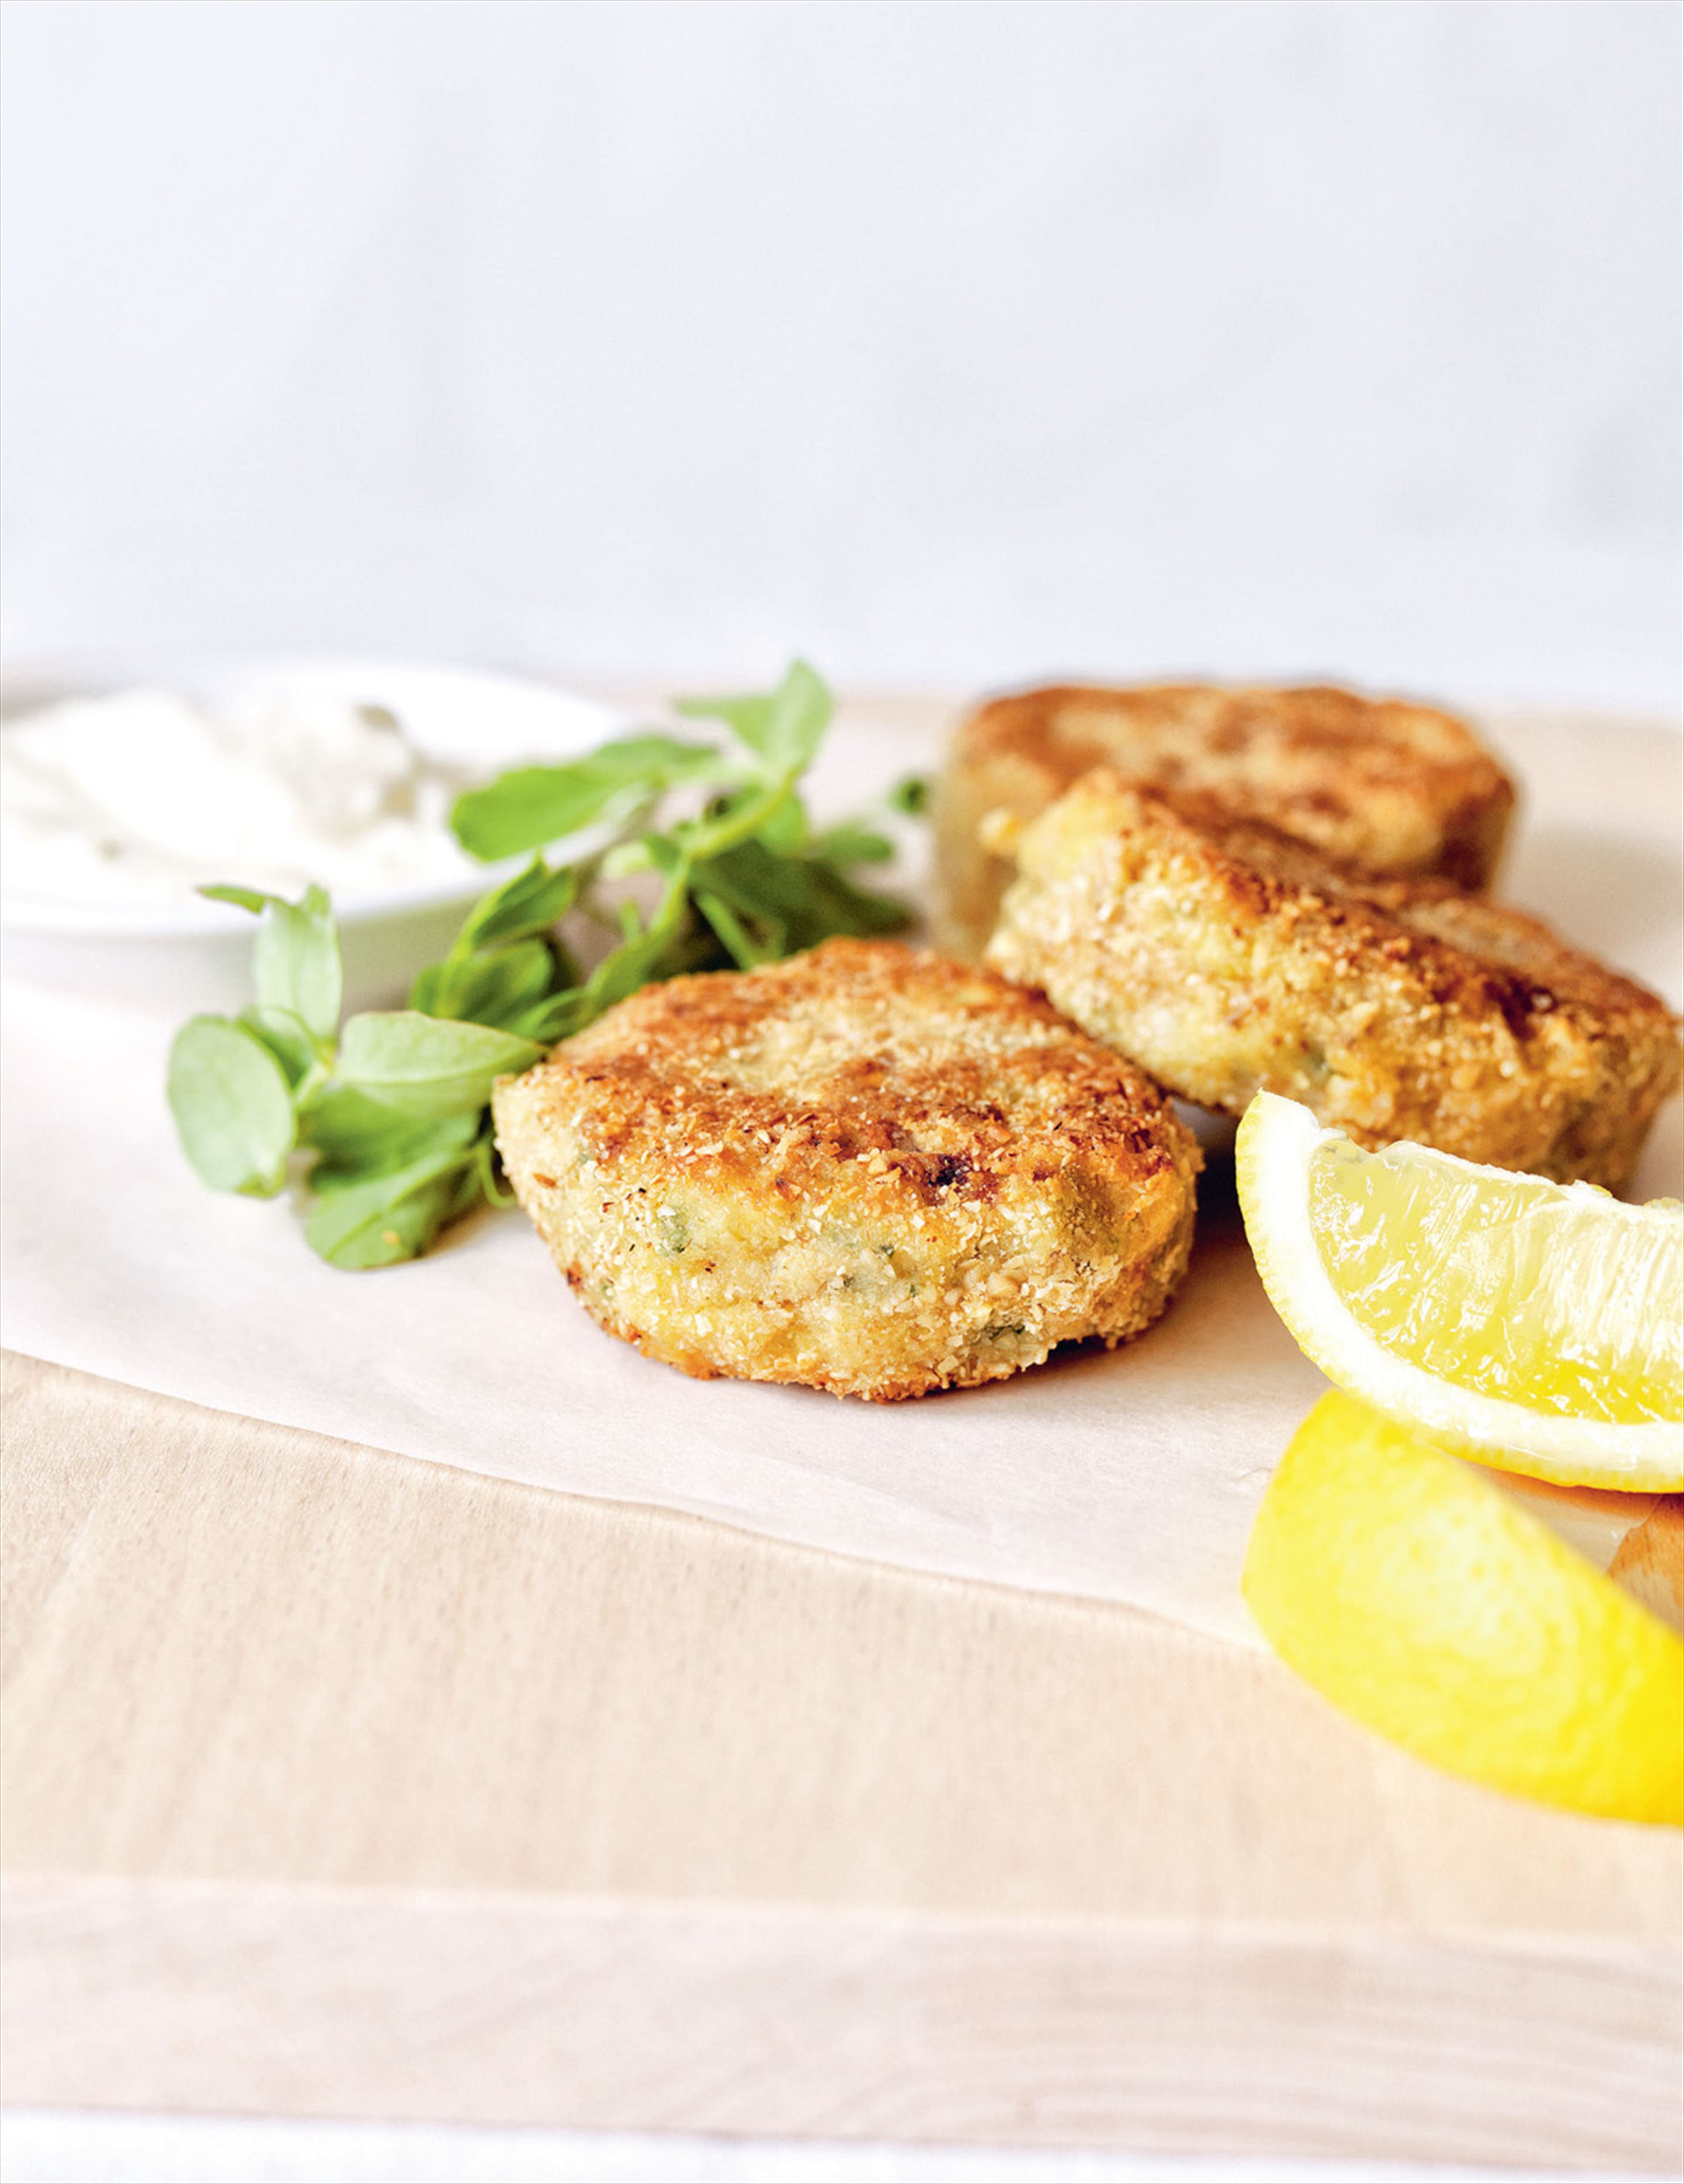 Mackerel & oat fishcakes with horseradish mayonnaise